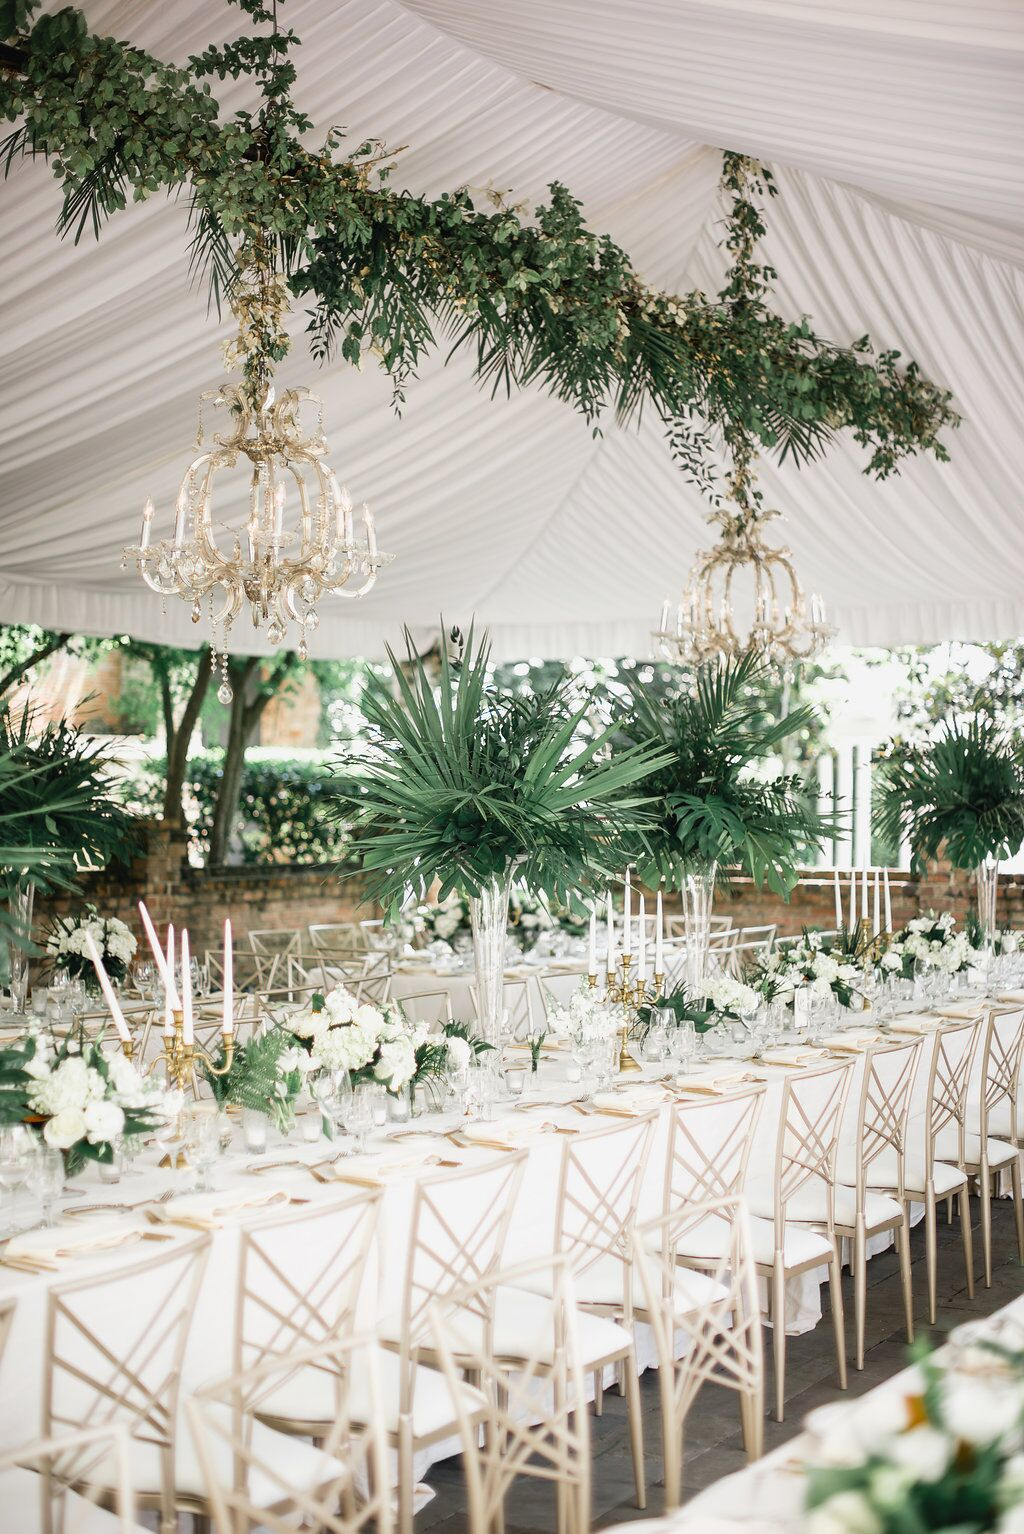 Design & Decor - A Charleston Bride will create a detailed event design based on your personal style and wedding vision. This process begins very early in the planning process, culminating into an event that is not only intentional but also distinctly your own.Custom renderings and design boards are created so you have a clear understanding of the overall feel of the wedding. We collaborate with the industry's elite sourcing from vendors all over the Southeast.